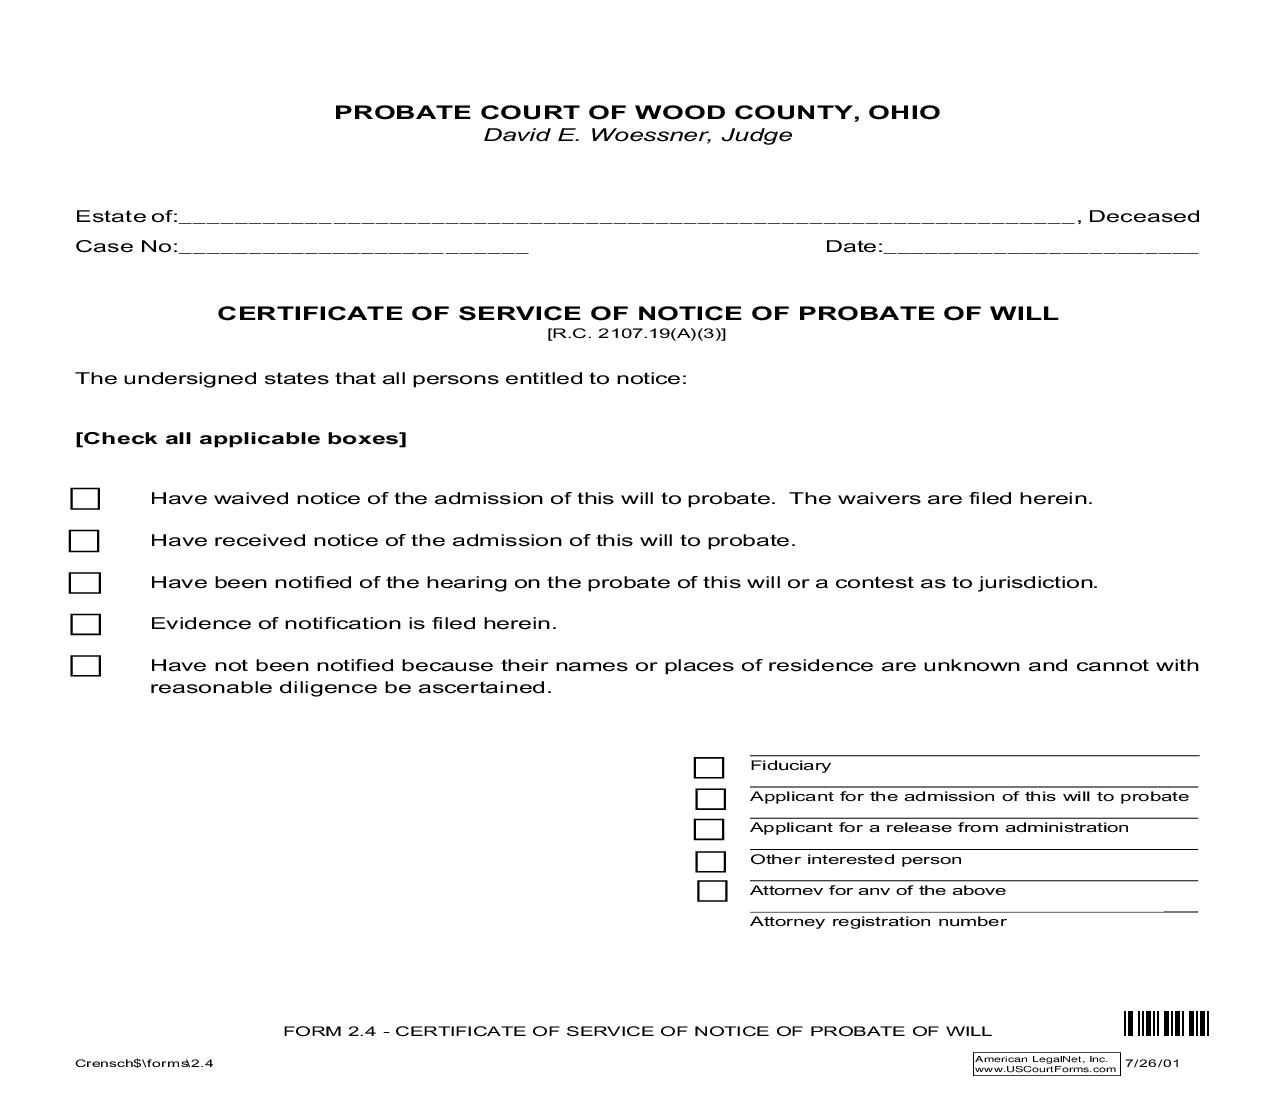 Certificate Of Service Of Notice Of Probate Of Will {2.4}   Pdf Fpdf Doc Docx   Ohio